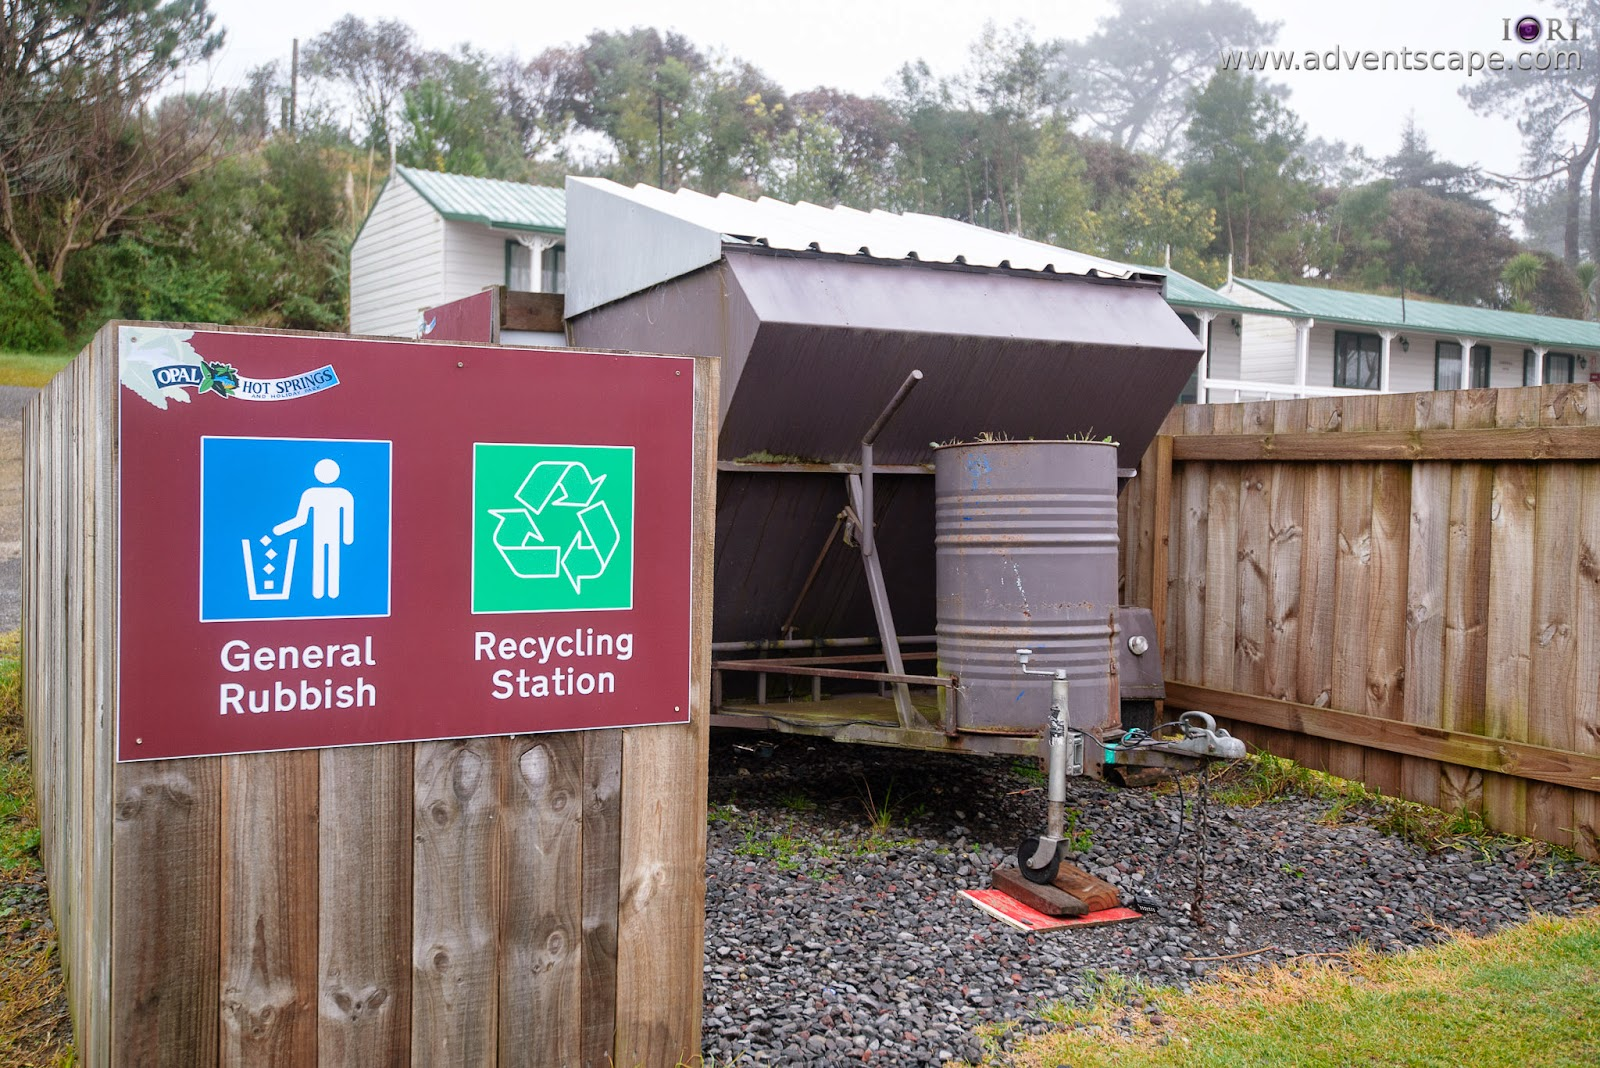 Philip Avellana, iori, adventscape, north island, new zealand, matamata, waikato, holiday park, accommodation, hot springs, trash can, garbage